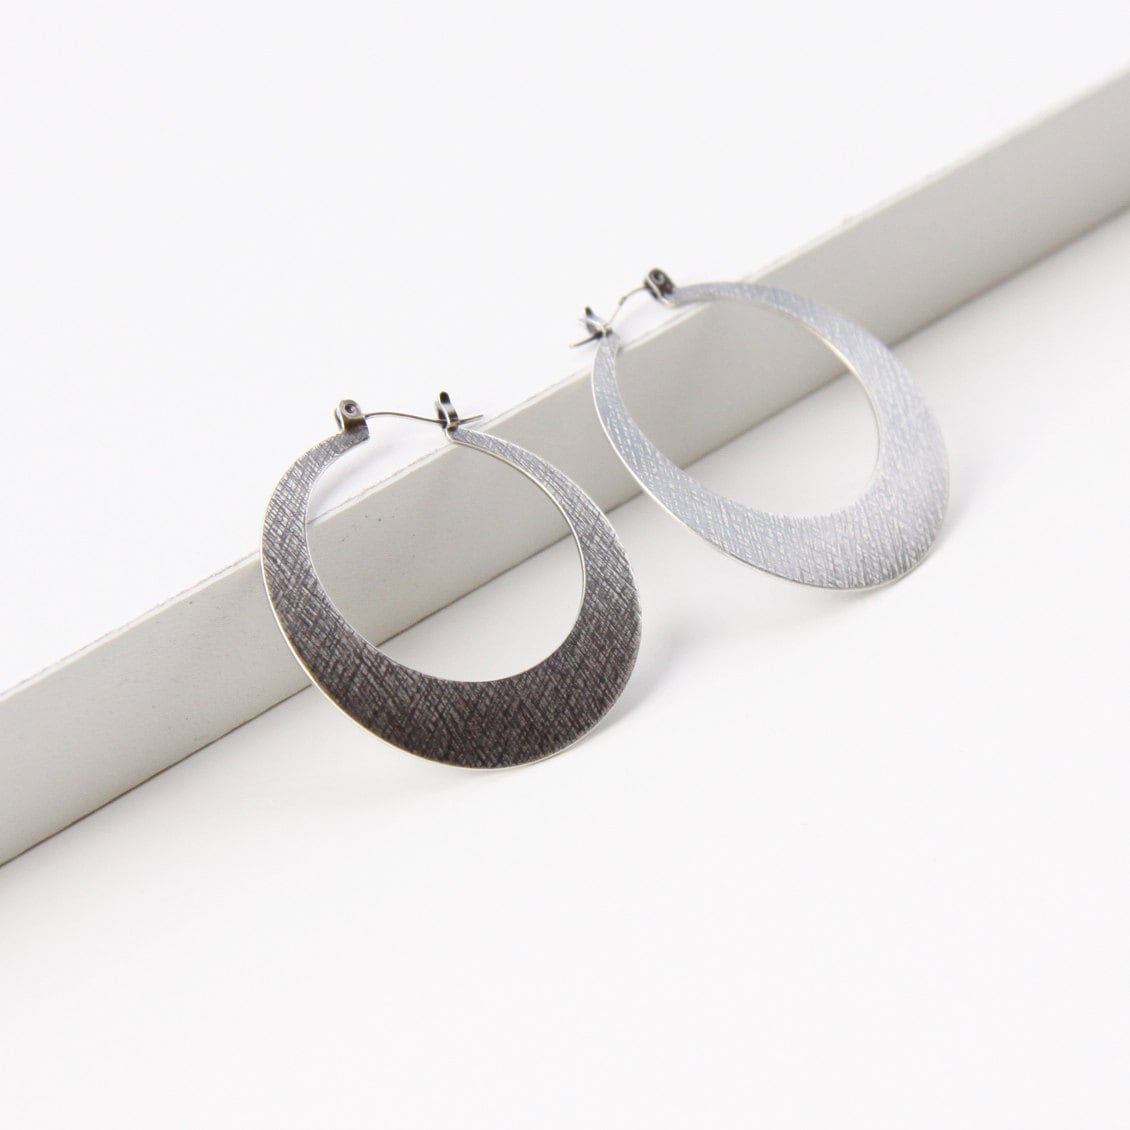 "Modern silver hoop earrings, sleek design in crescent moon shape sturdy and lightweight design for everyday wear - ""Silver Lunar Hoops"""